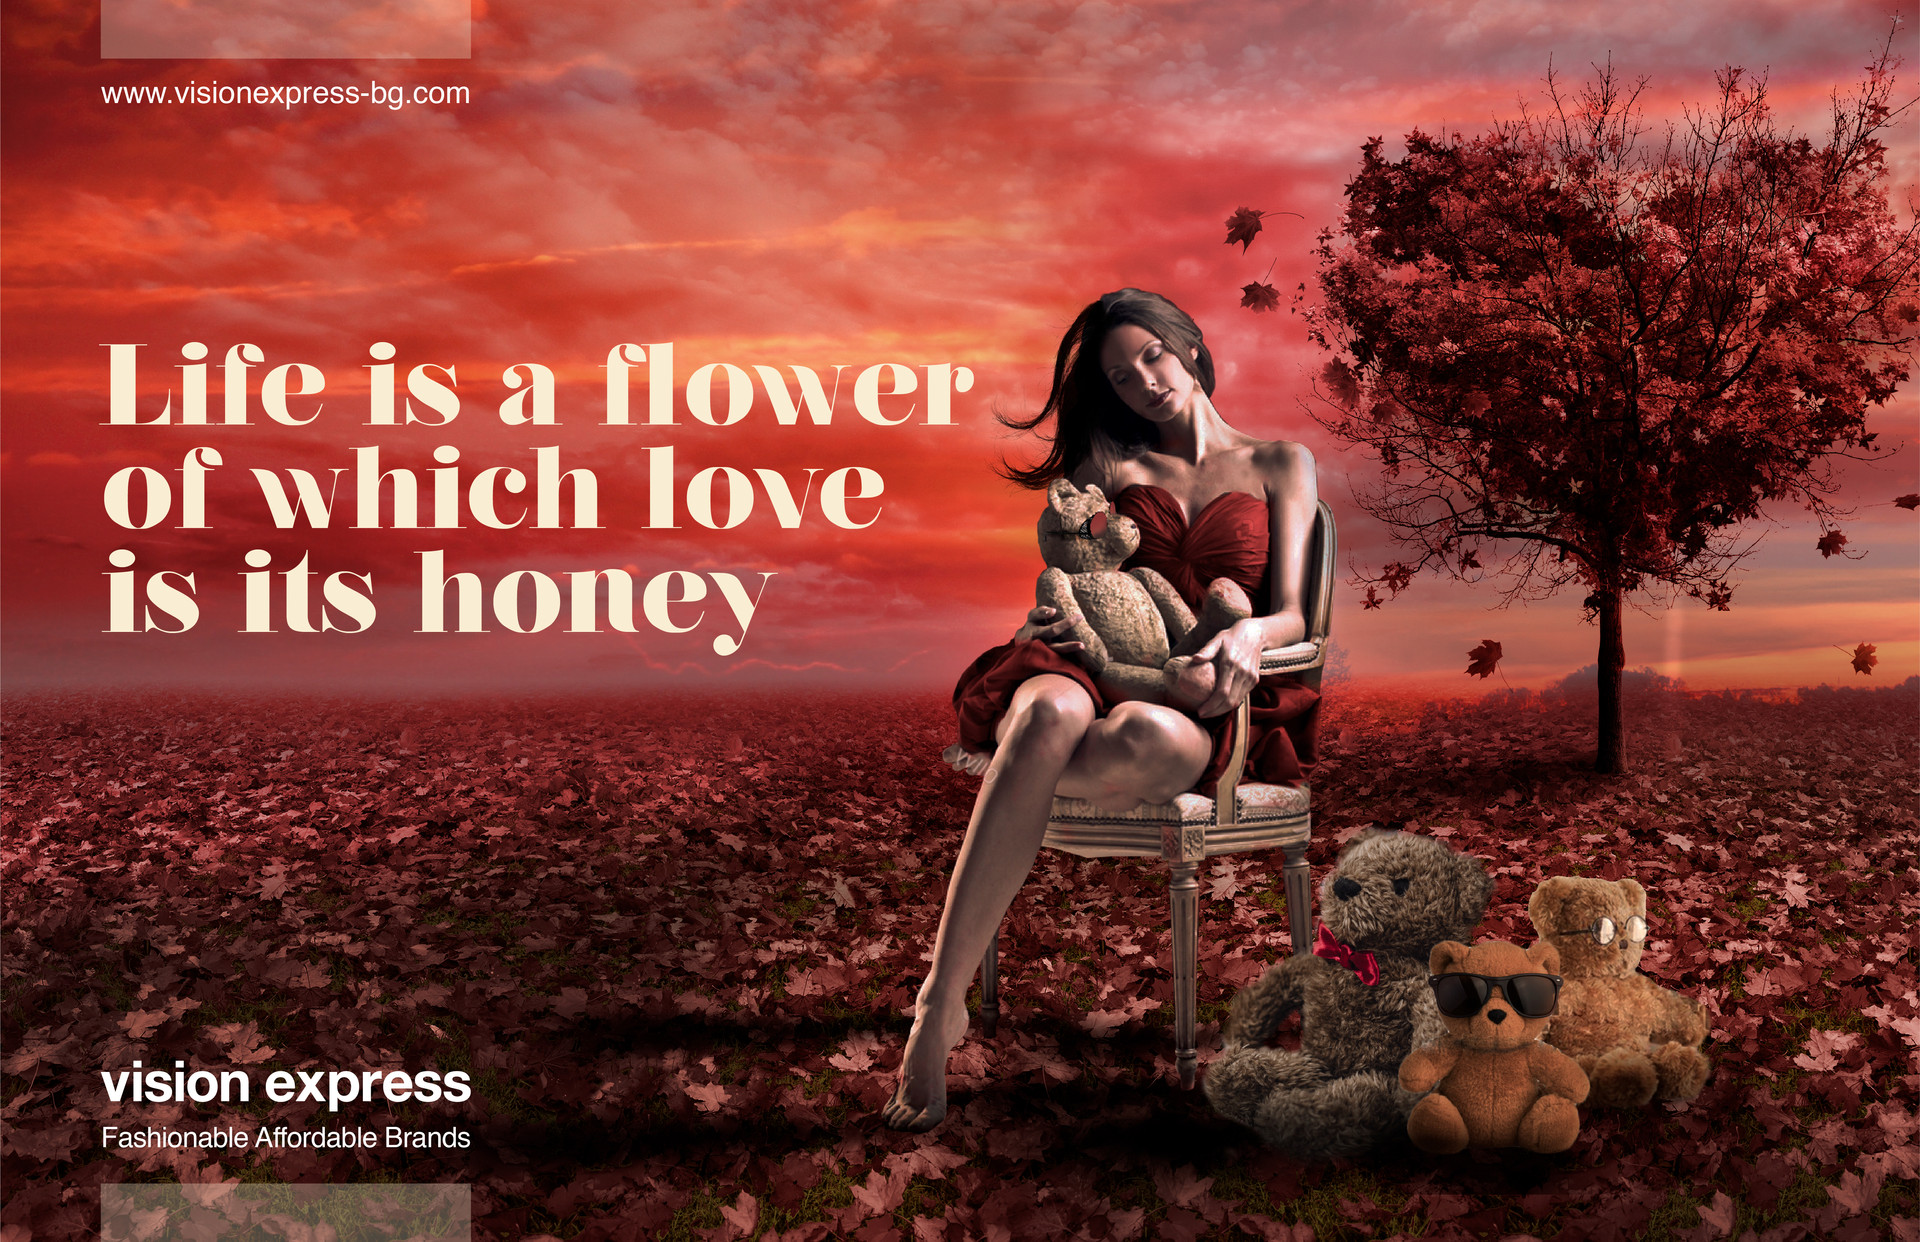 Vision Express Corporate Ads-04.jpg